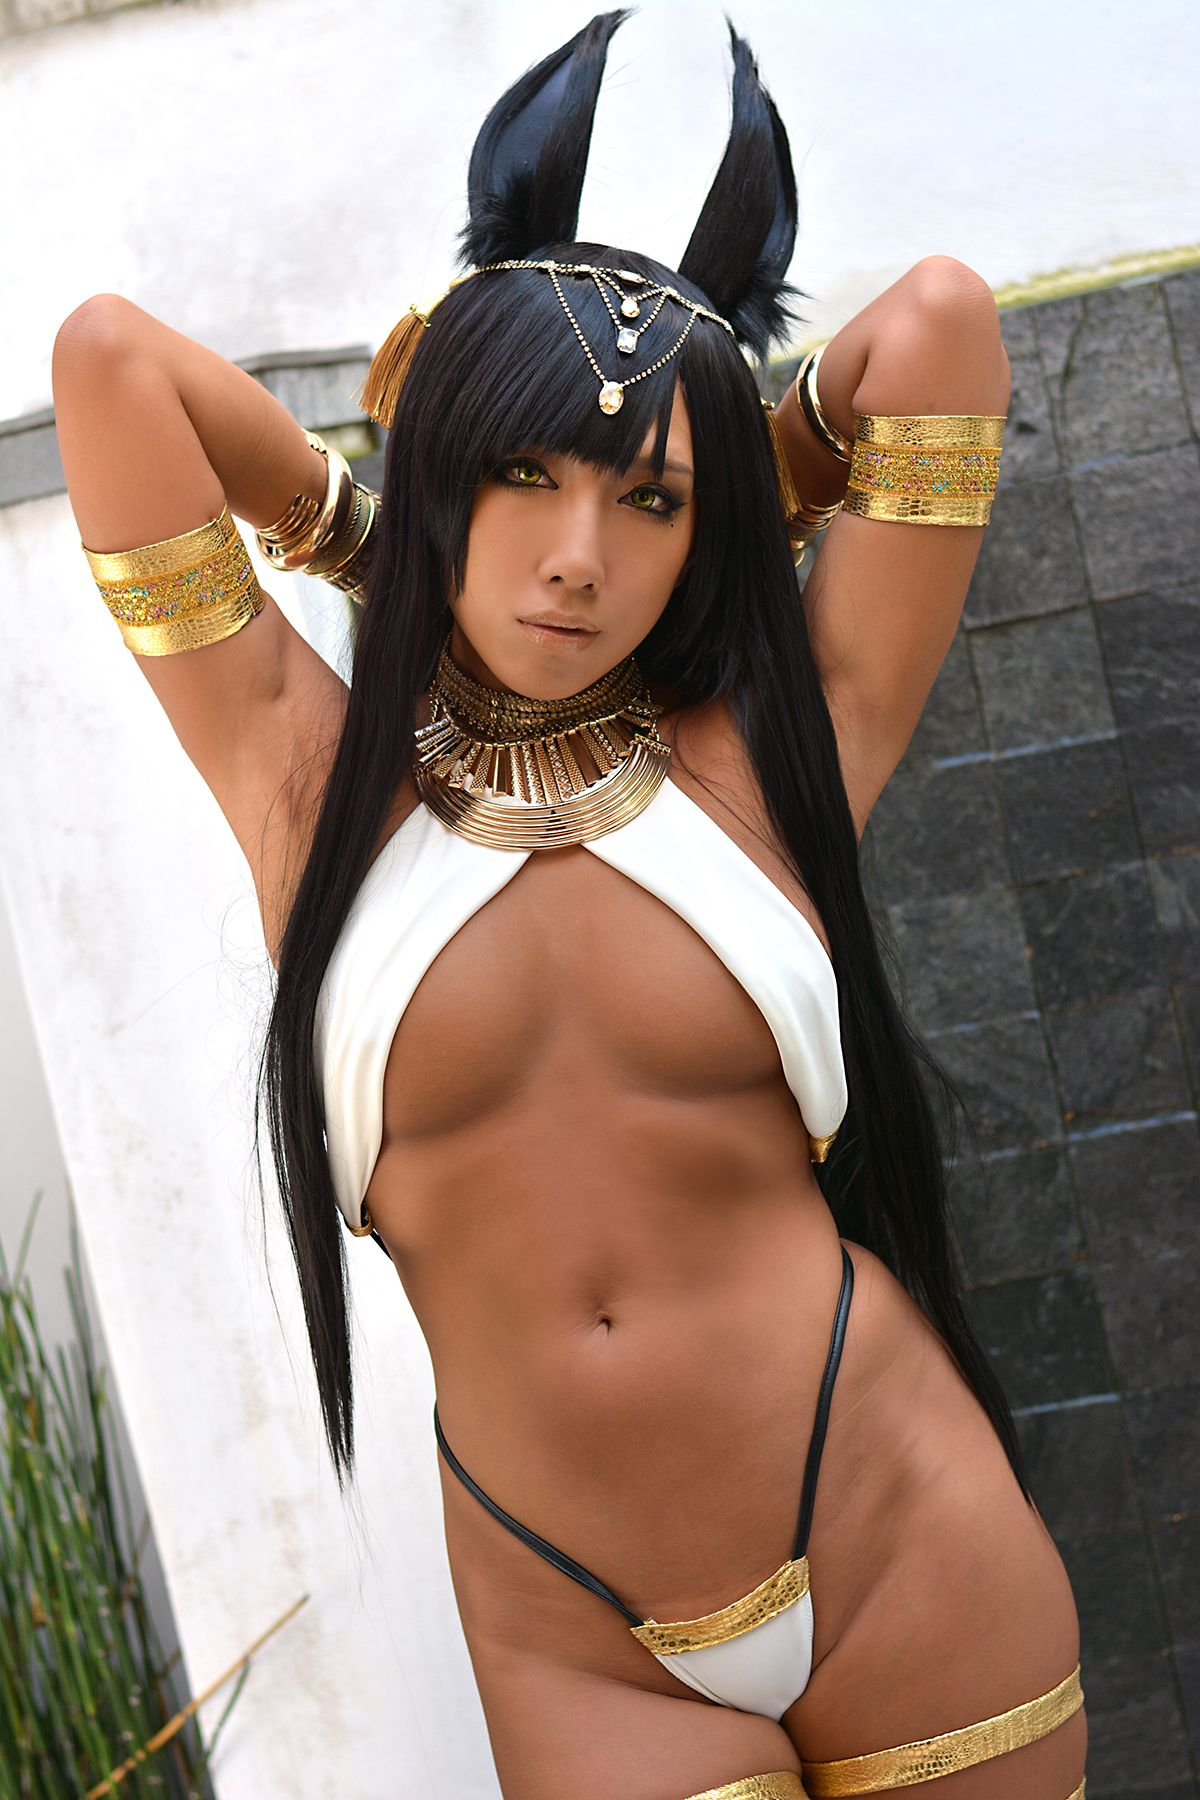 sexiest cosplayer